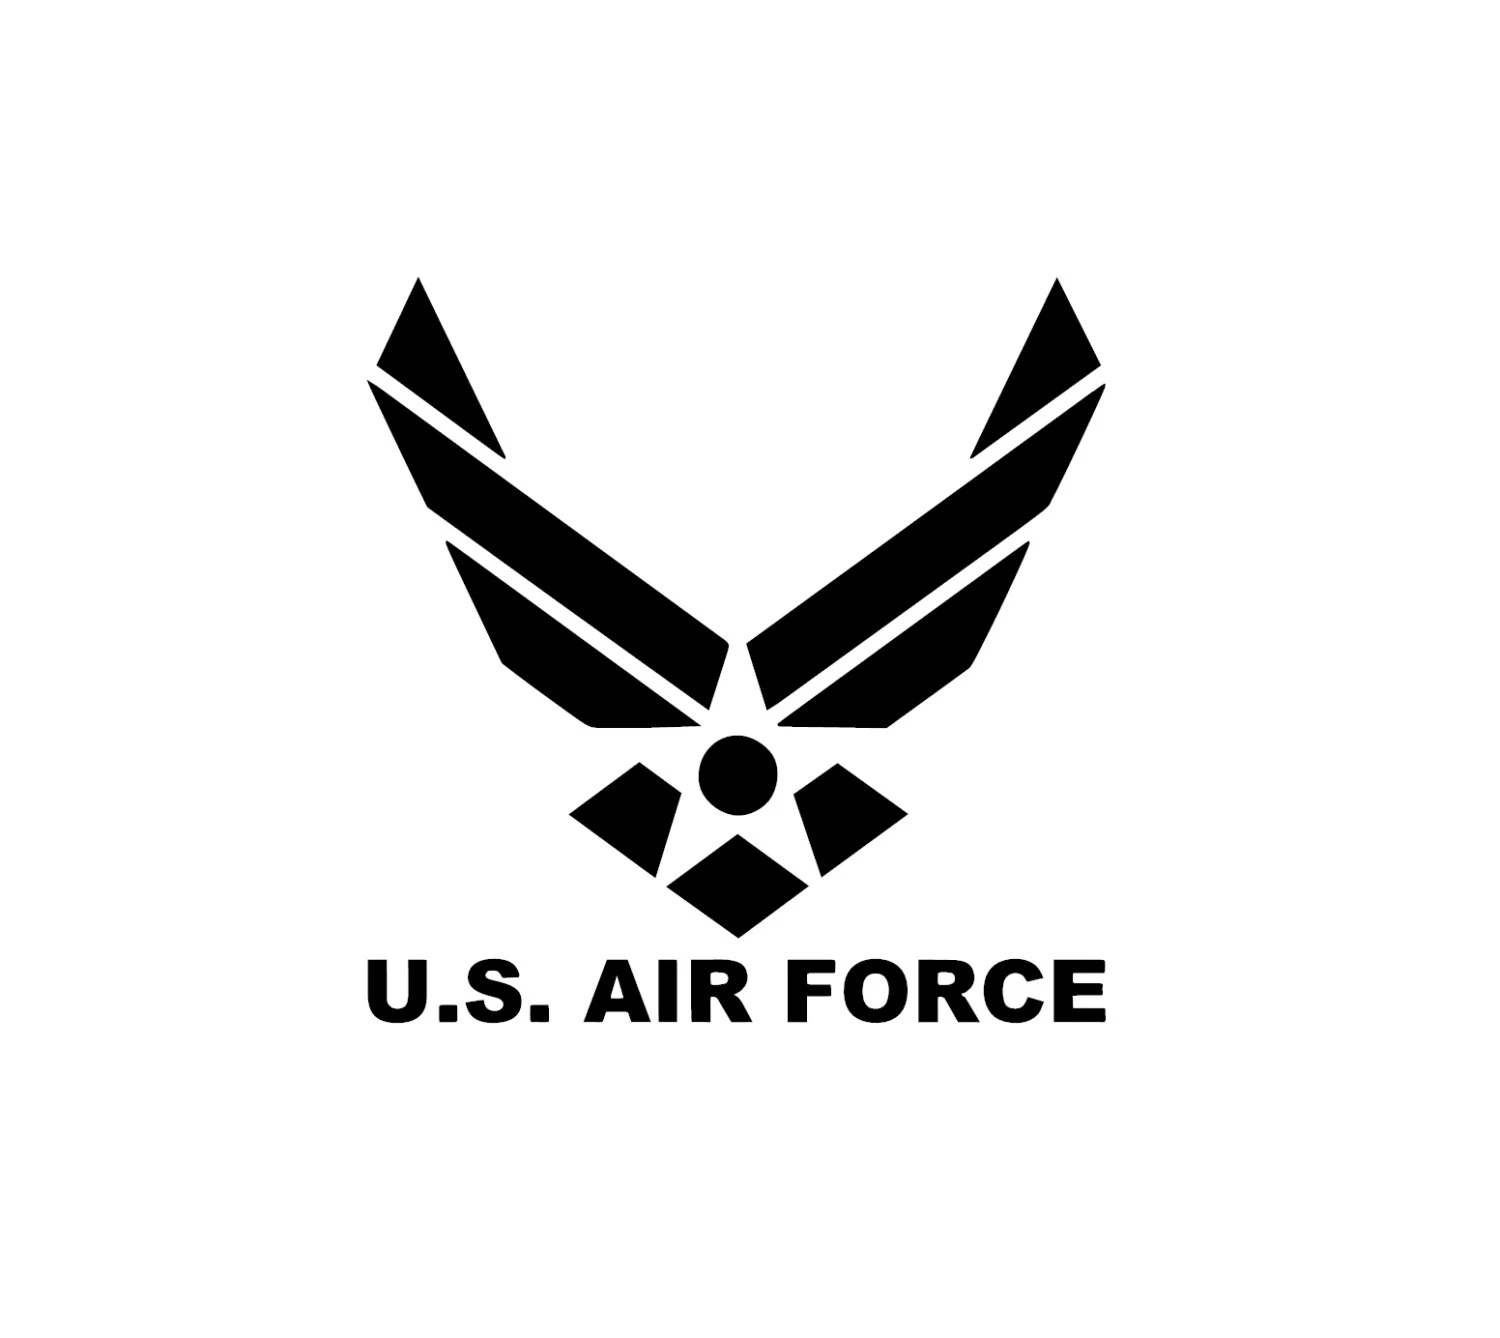 Air Force Decal 1 Free Shipping Jeep Truck ATV UTV Mudding